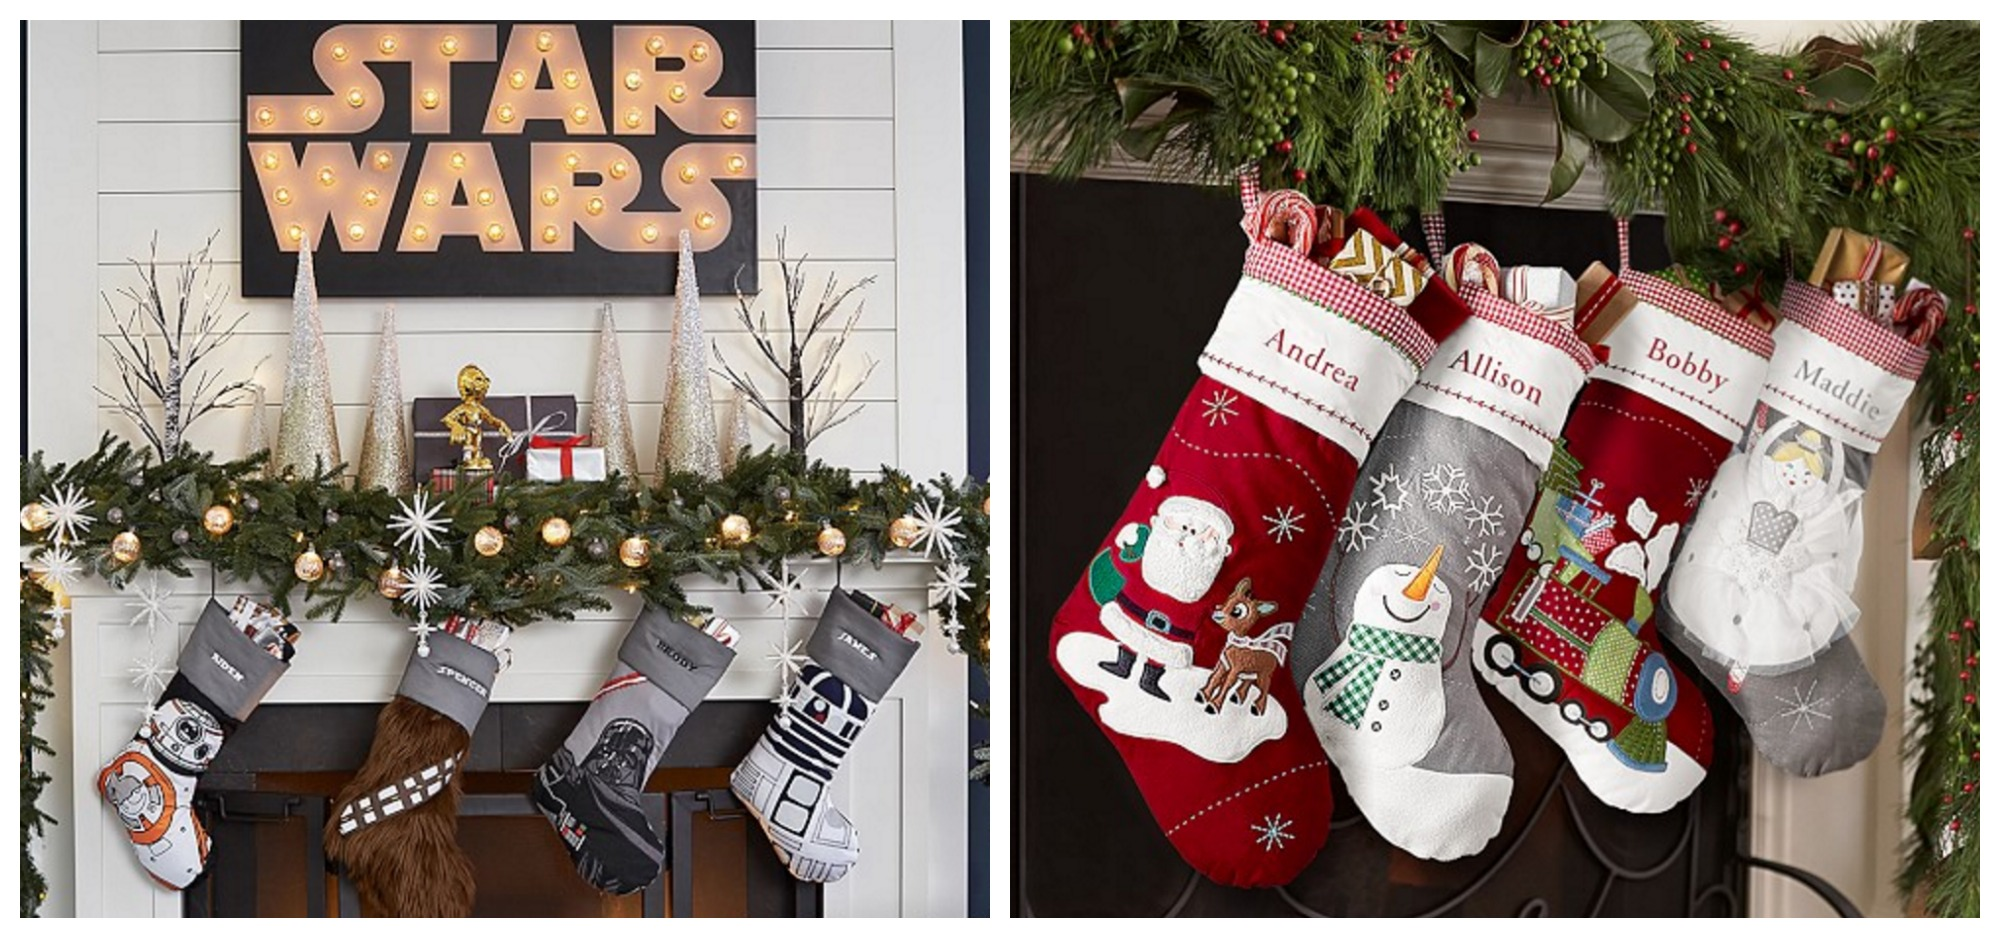 Pottery Barn Kids: 20% off Stockings + Free Shipping - My Frugal ...